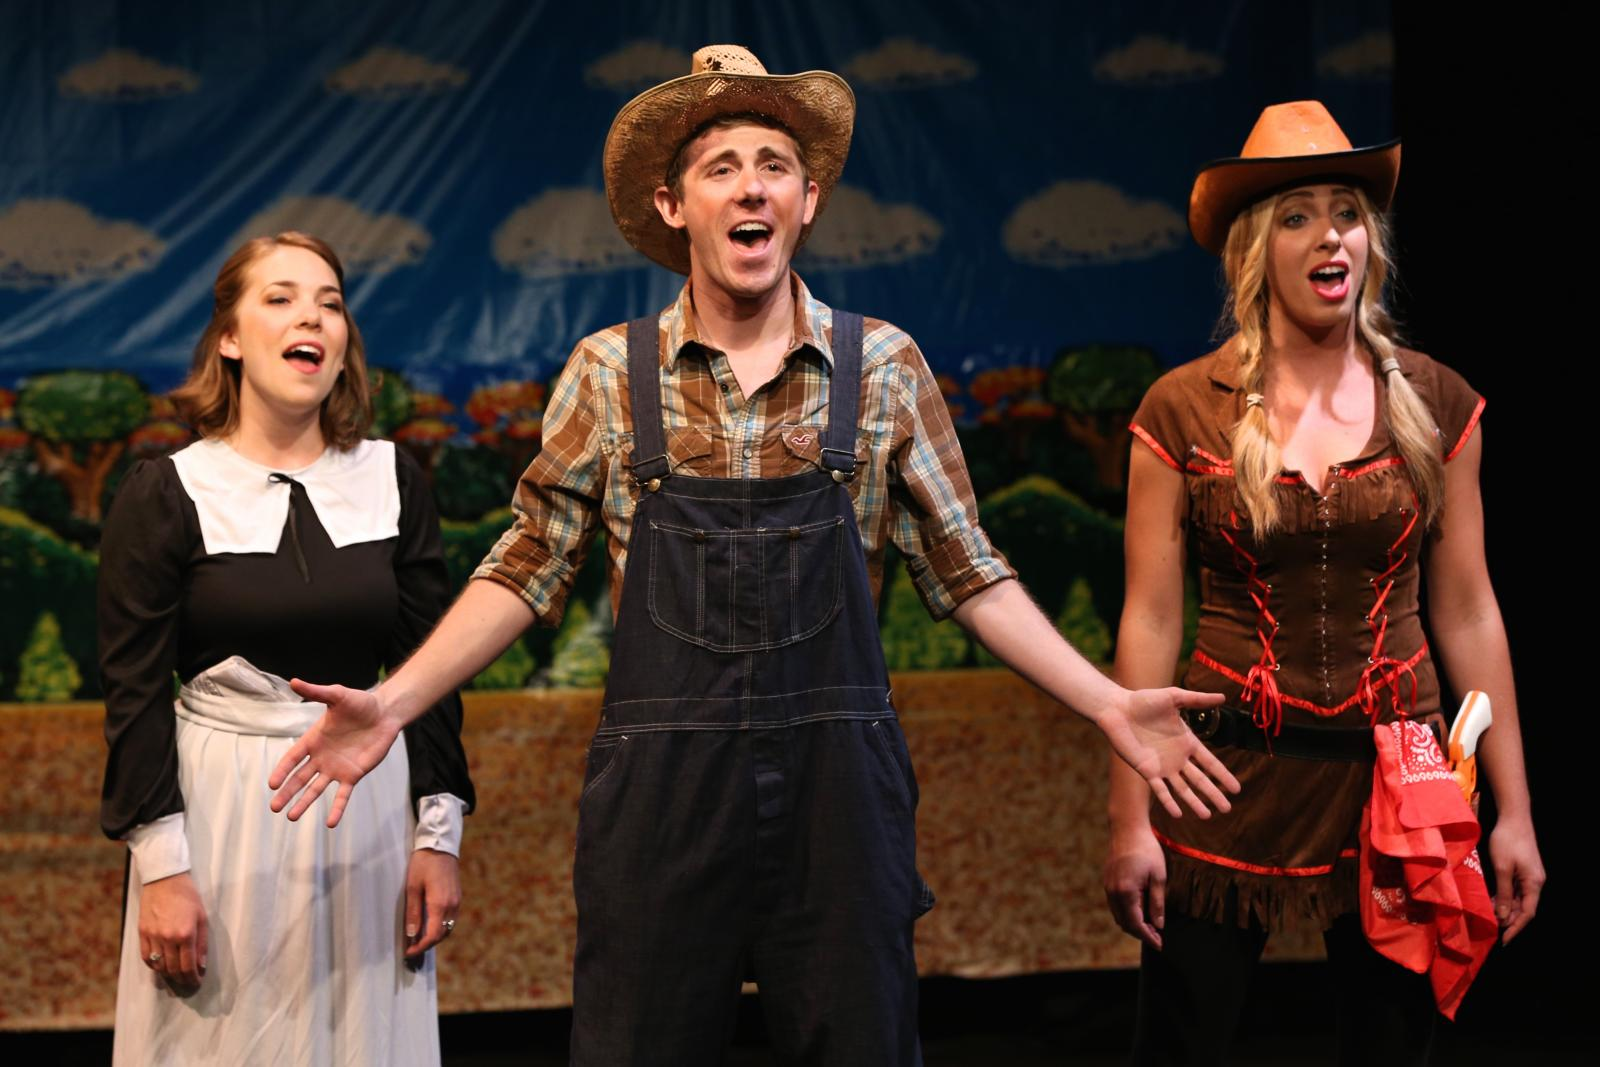 """Oregon Trail: A Musical"" presented by Literally Entertainment at Mixed Blood Theatre. Photo: Alex Wohlhueter."